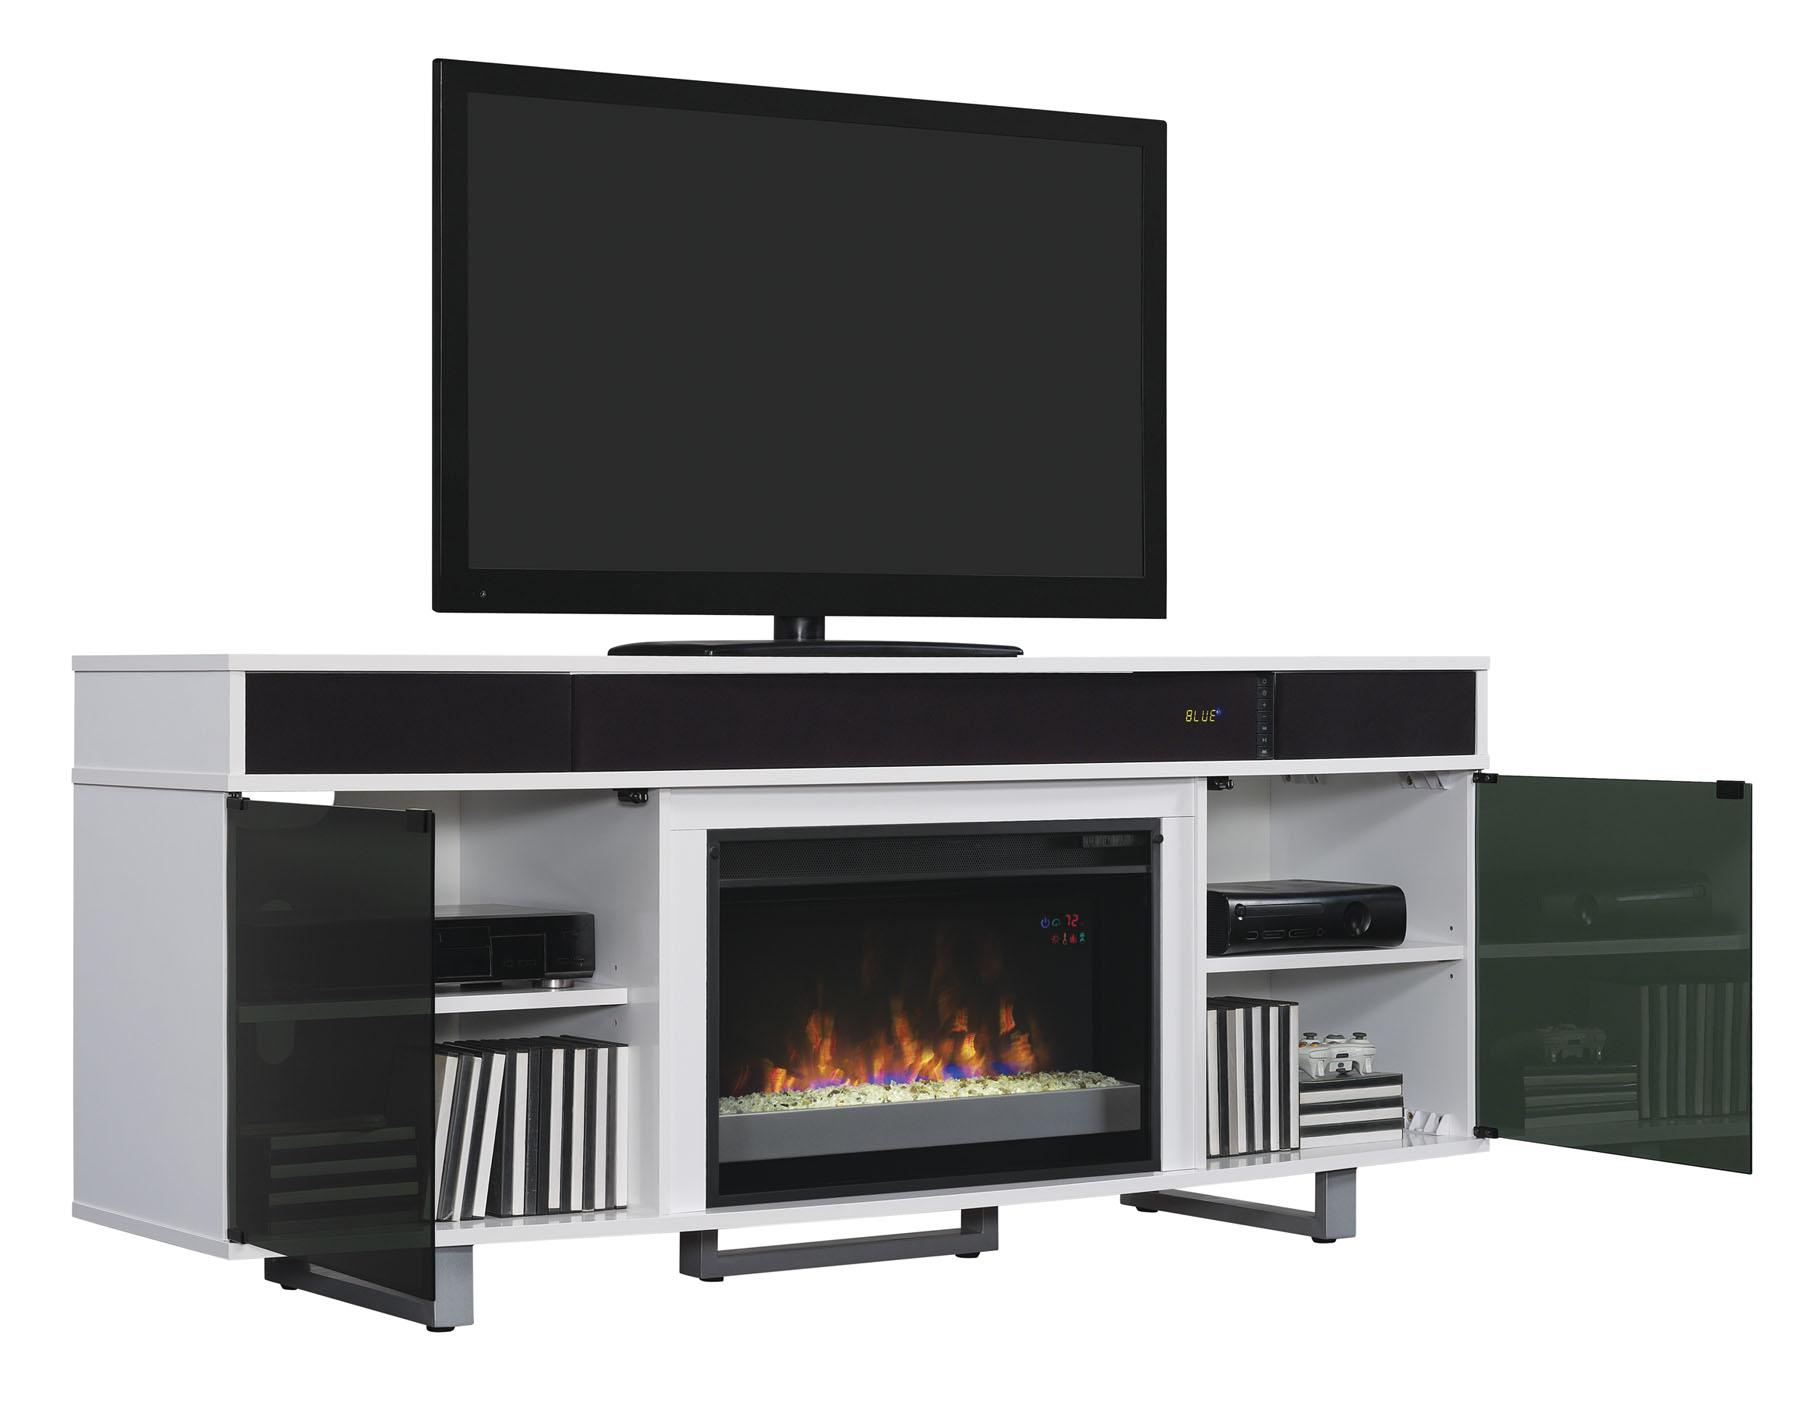 any entertaining furniture inch space sams electric adorable grey for depot fireplace cabinet home costco stand stone stands with club tv modern lowes